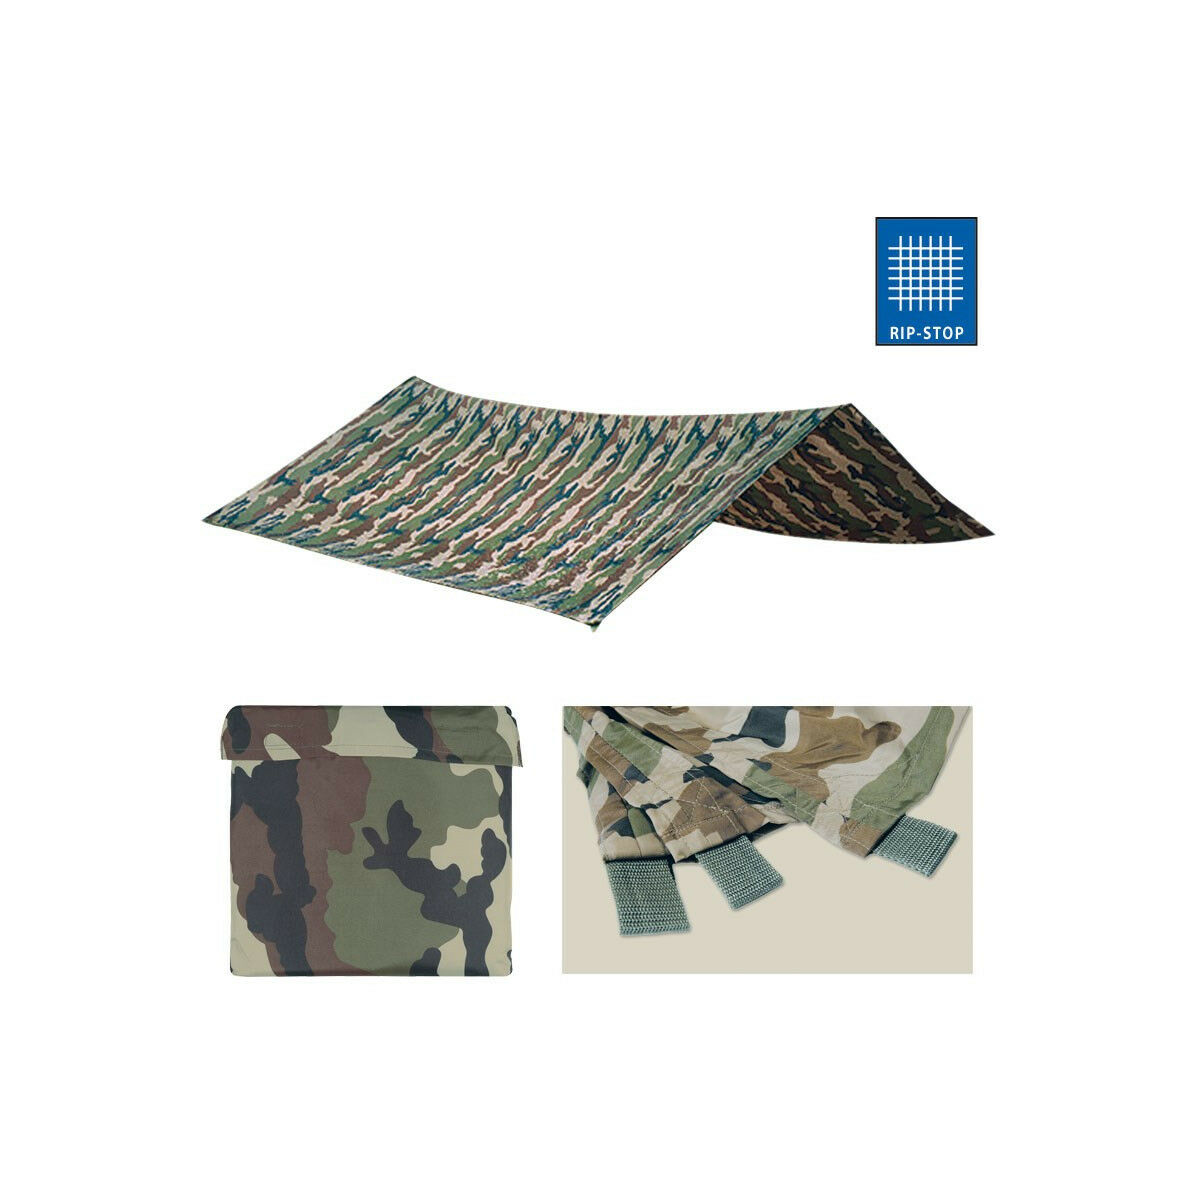 Bache polyester couture waterproof 3x3 camo this opex bivouac terrain   wholesale price